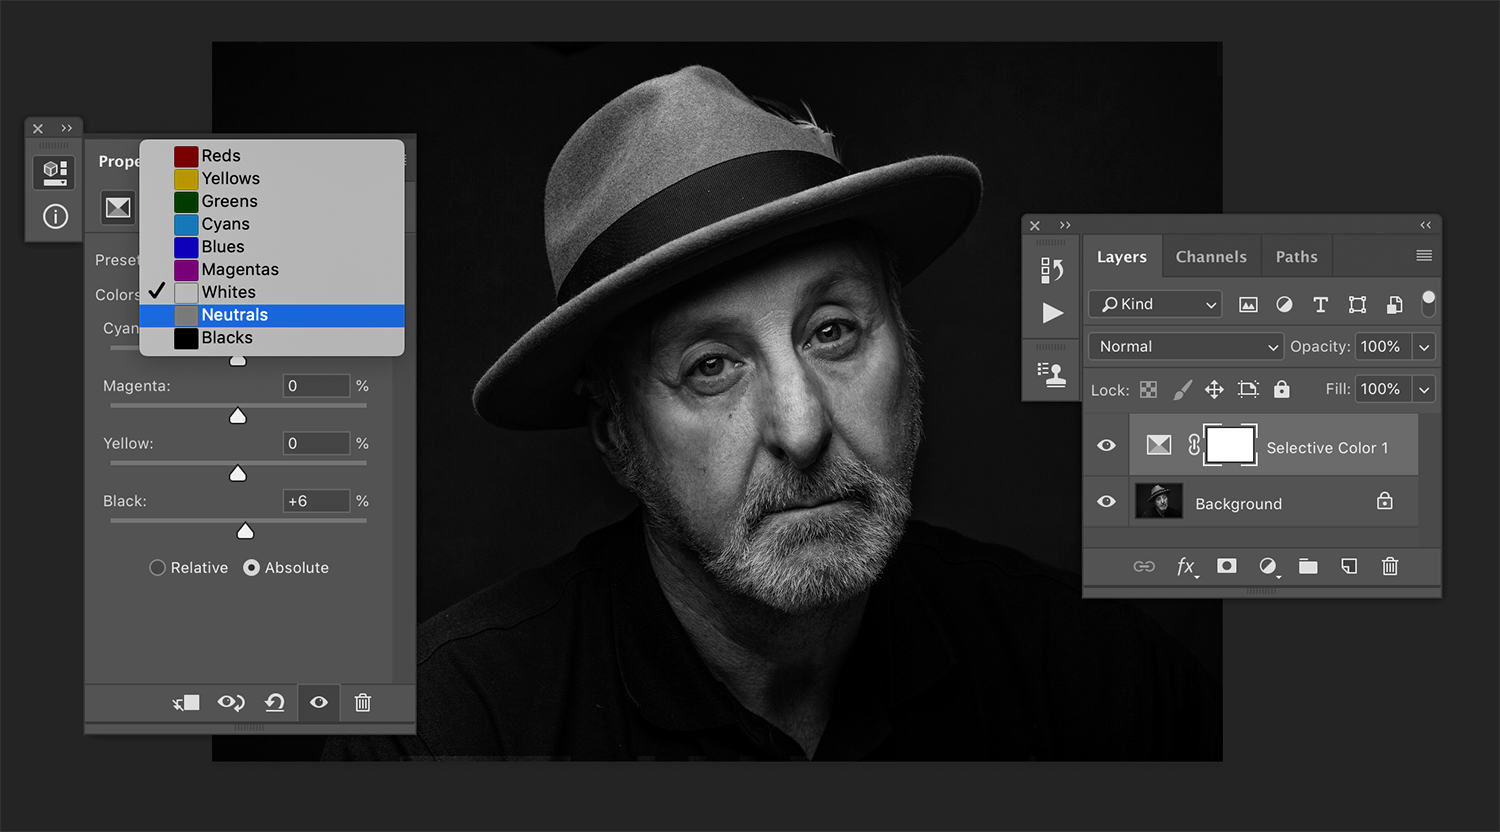 Selective color in processing black and white images.